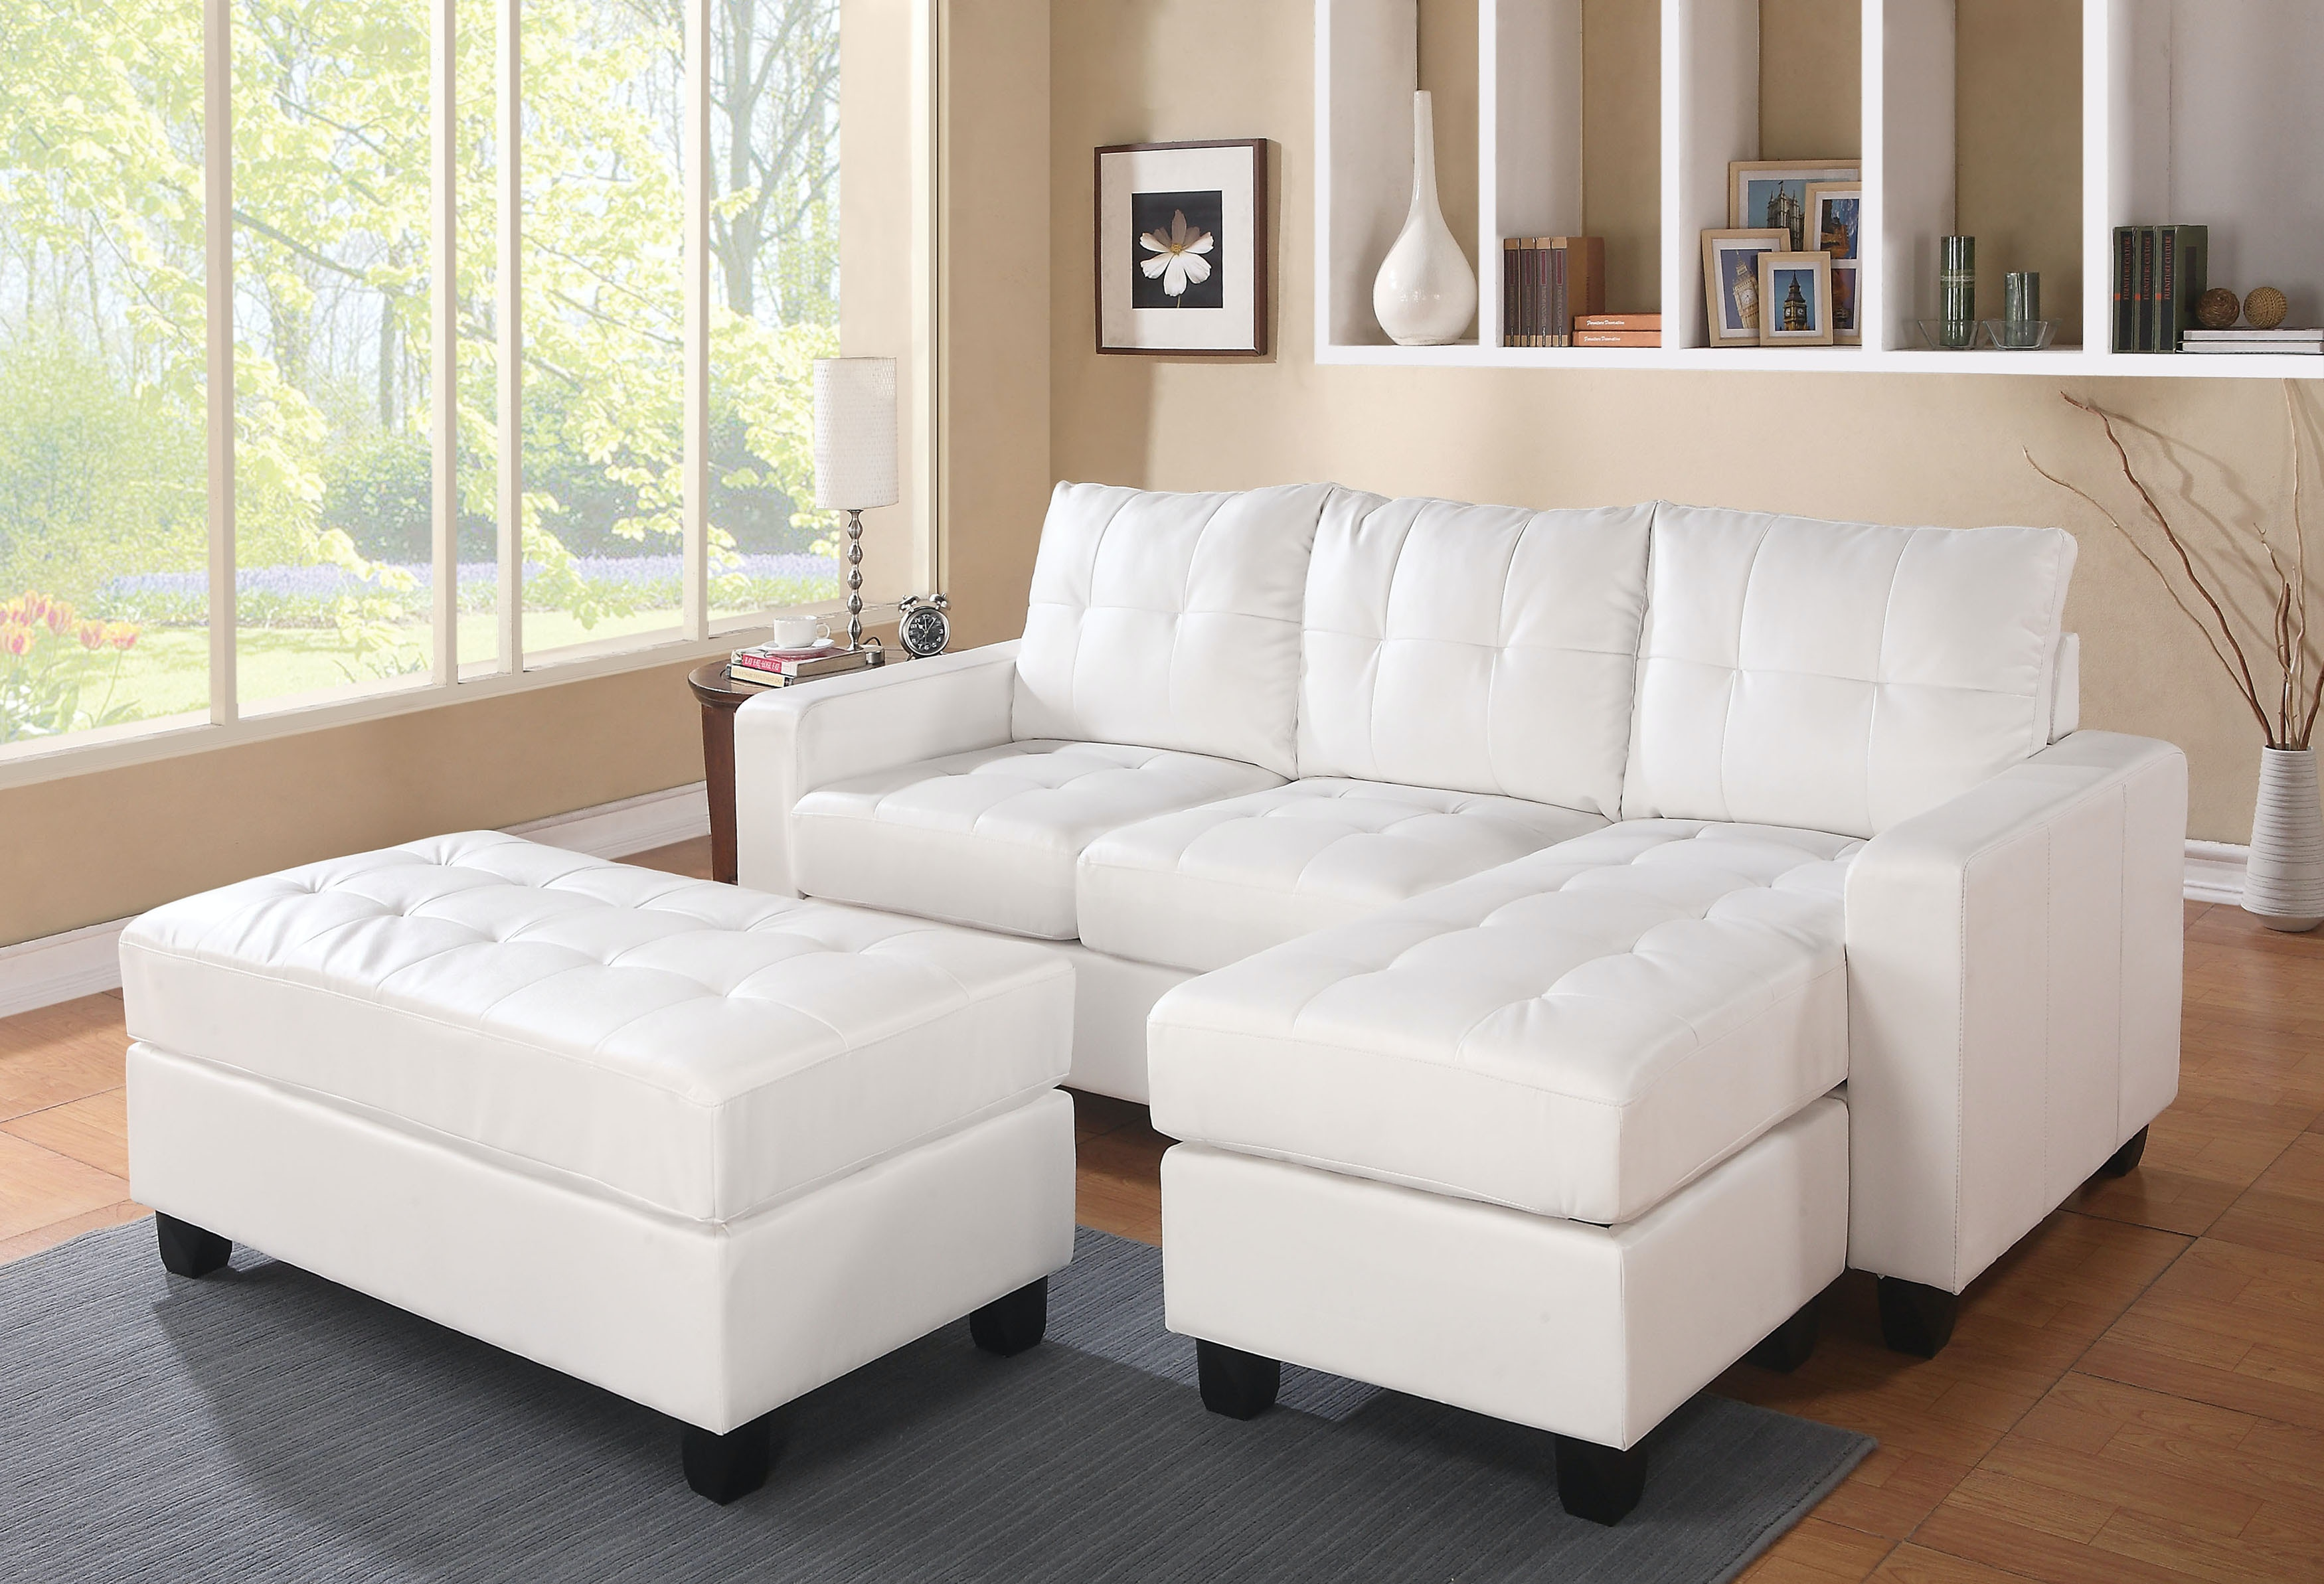 Acme Furniture Lyssa Sectional Sofa With Ottoman 51210